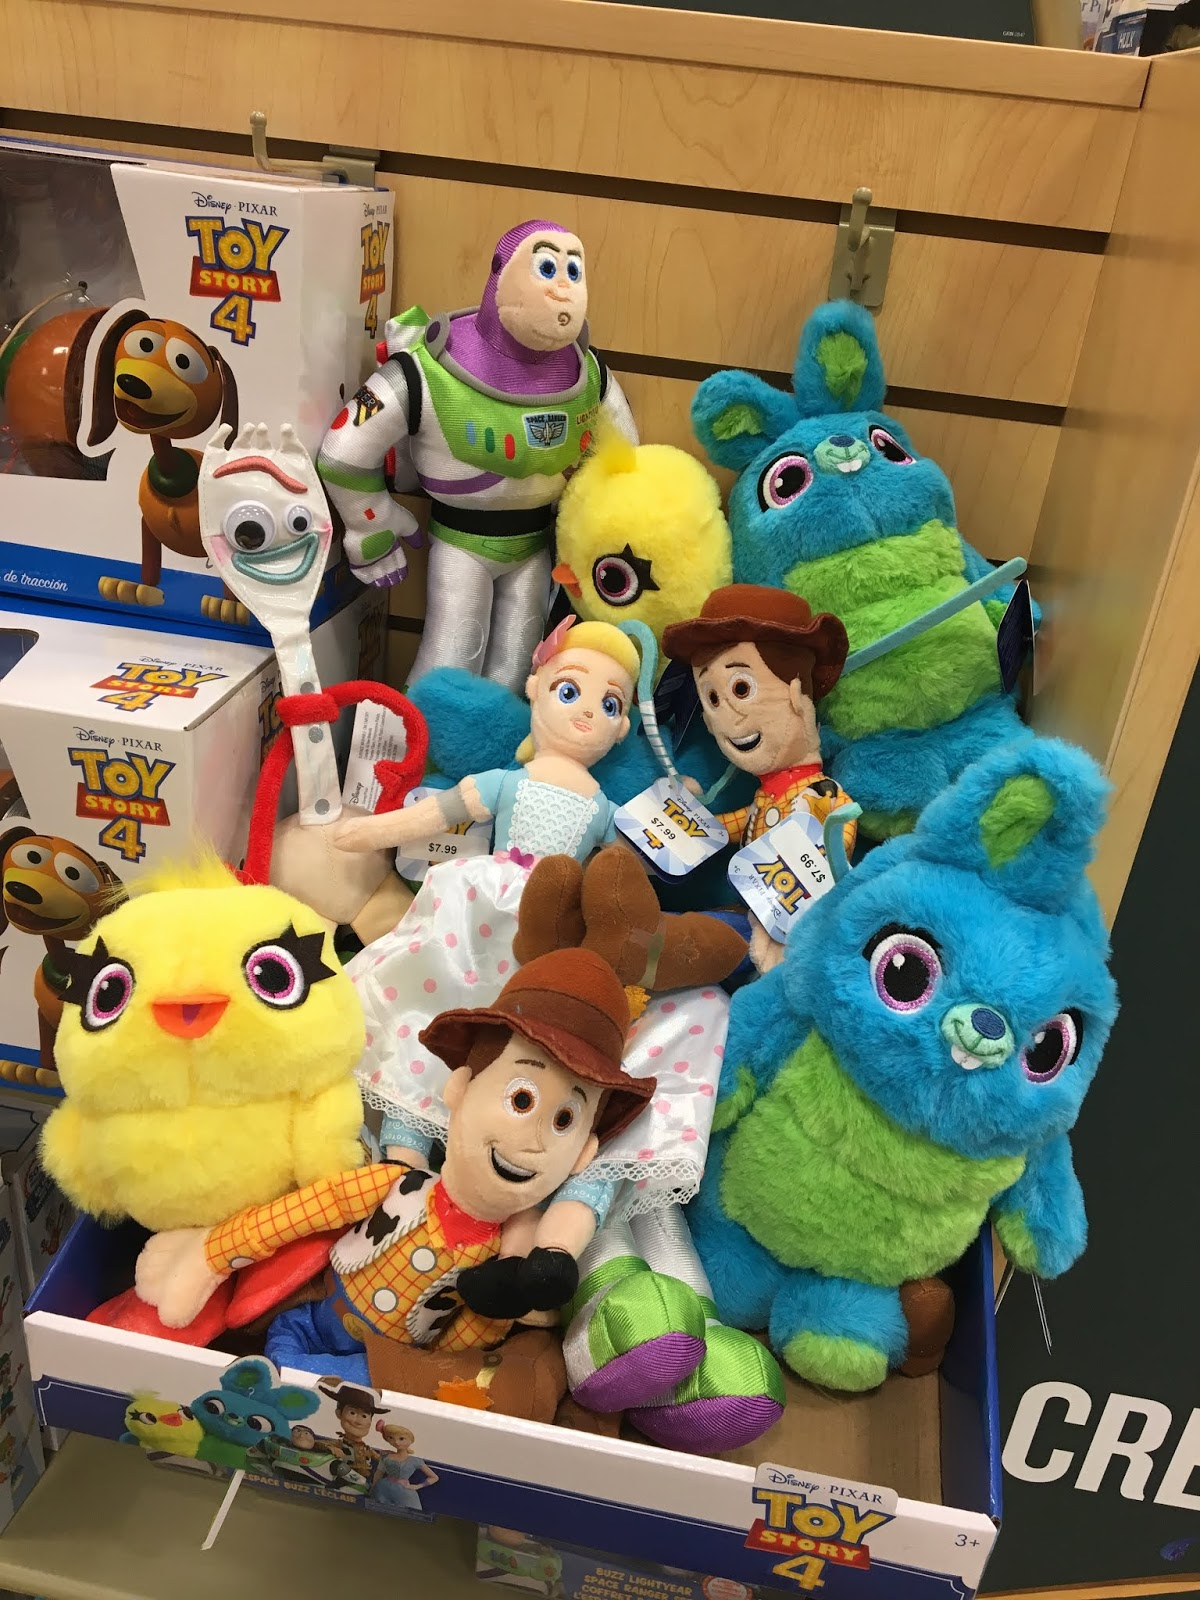 toy story 4 toys in store release 2019